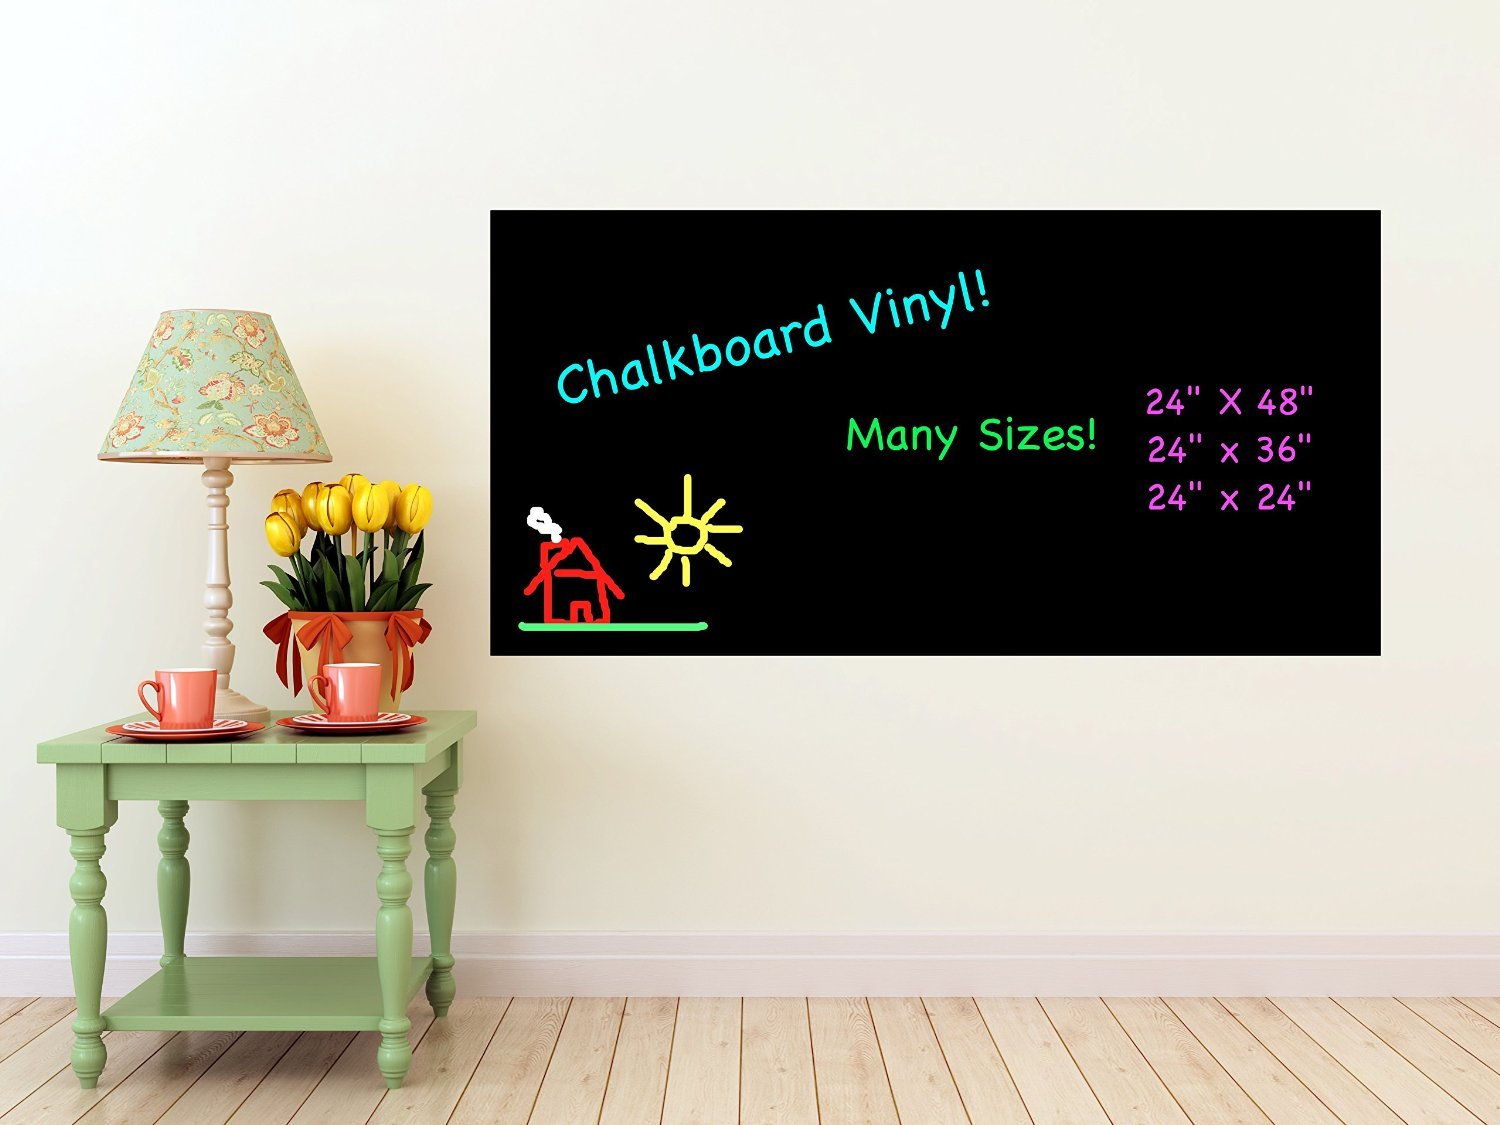 Chalkboard Wall Part - 30: Buy Tiny Deal 200 X 45Cm Waterproof Chalkboard Removable Vinyl Wall Sticker  Decal With 5 Pcs Online At Low Prices In India - Amazon.in